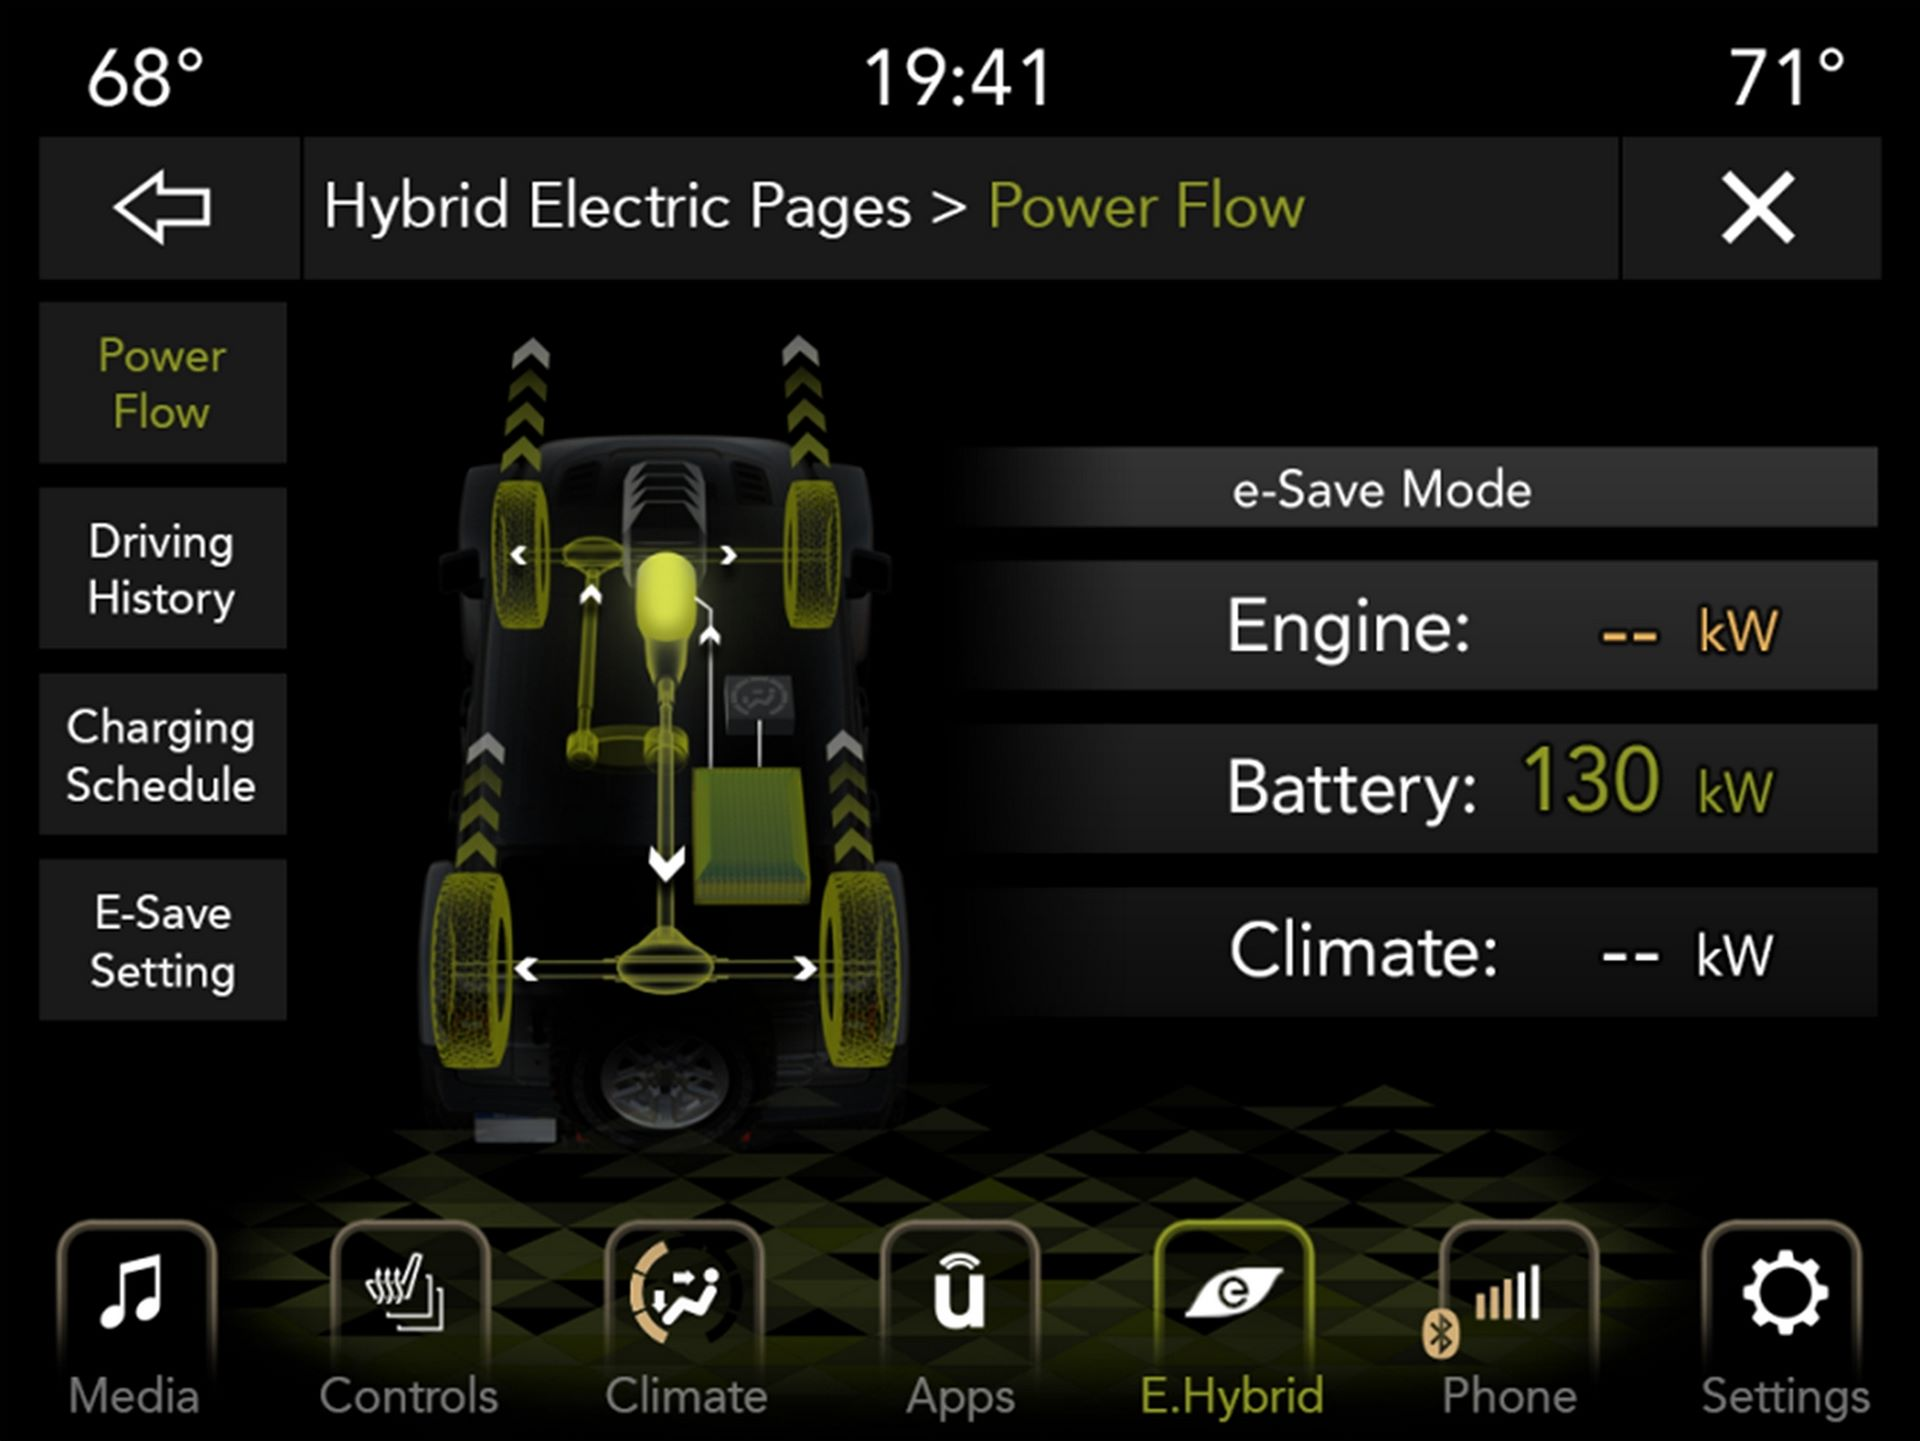 The Hybrid Electric Pages in the 2021 Jeep Wrangler 4xe tracks driving history, showing usage by battery and engine power.